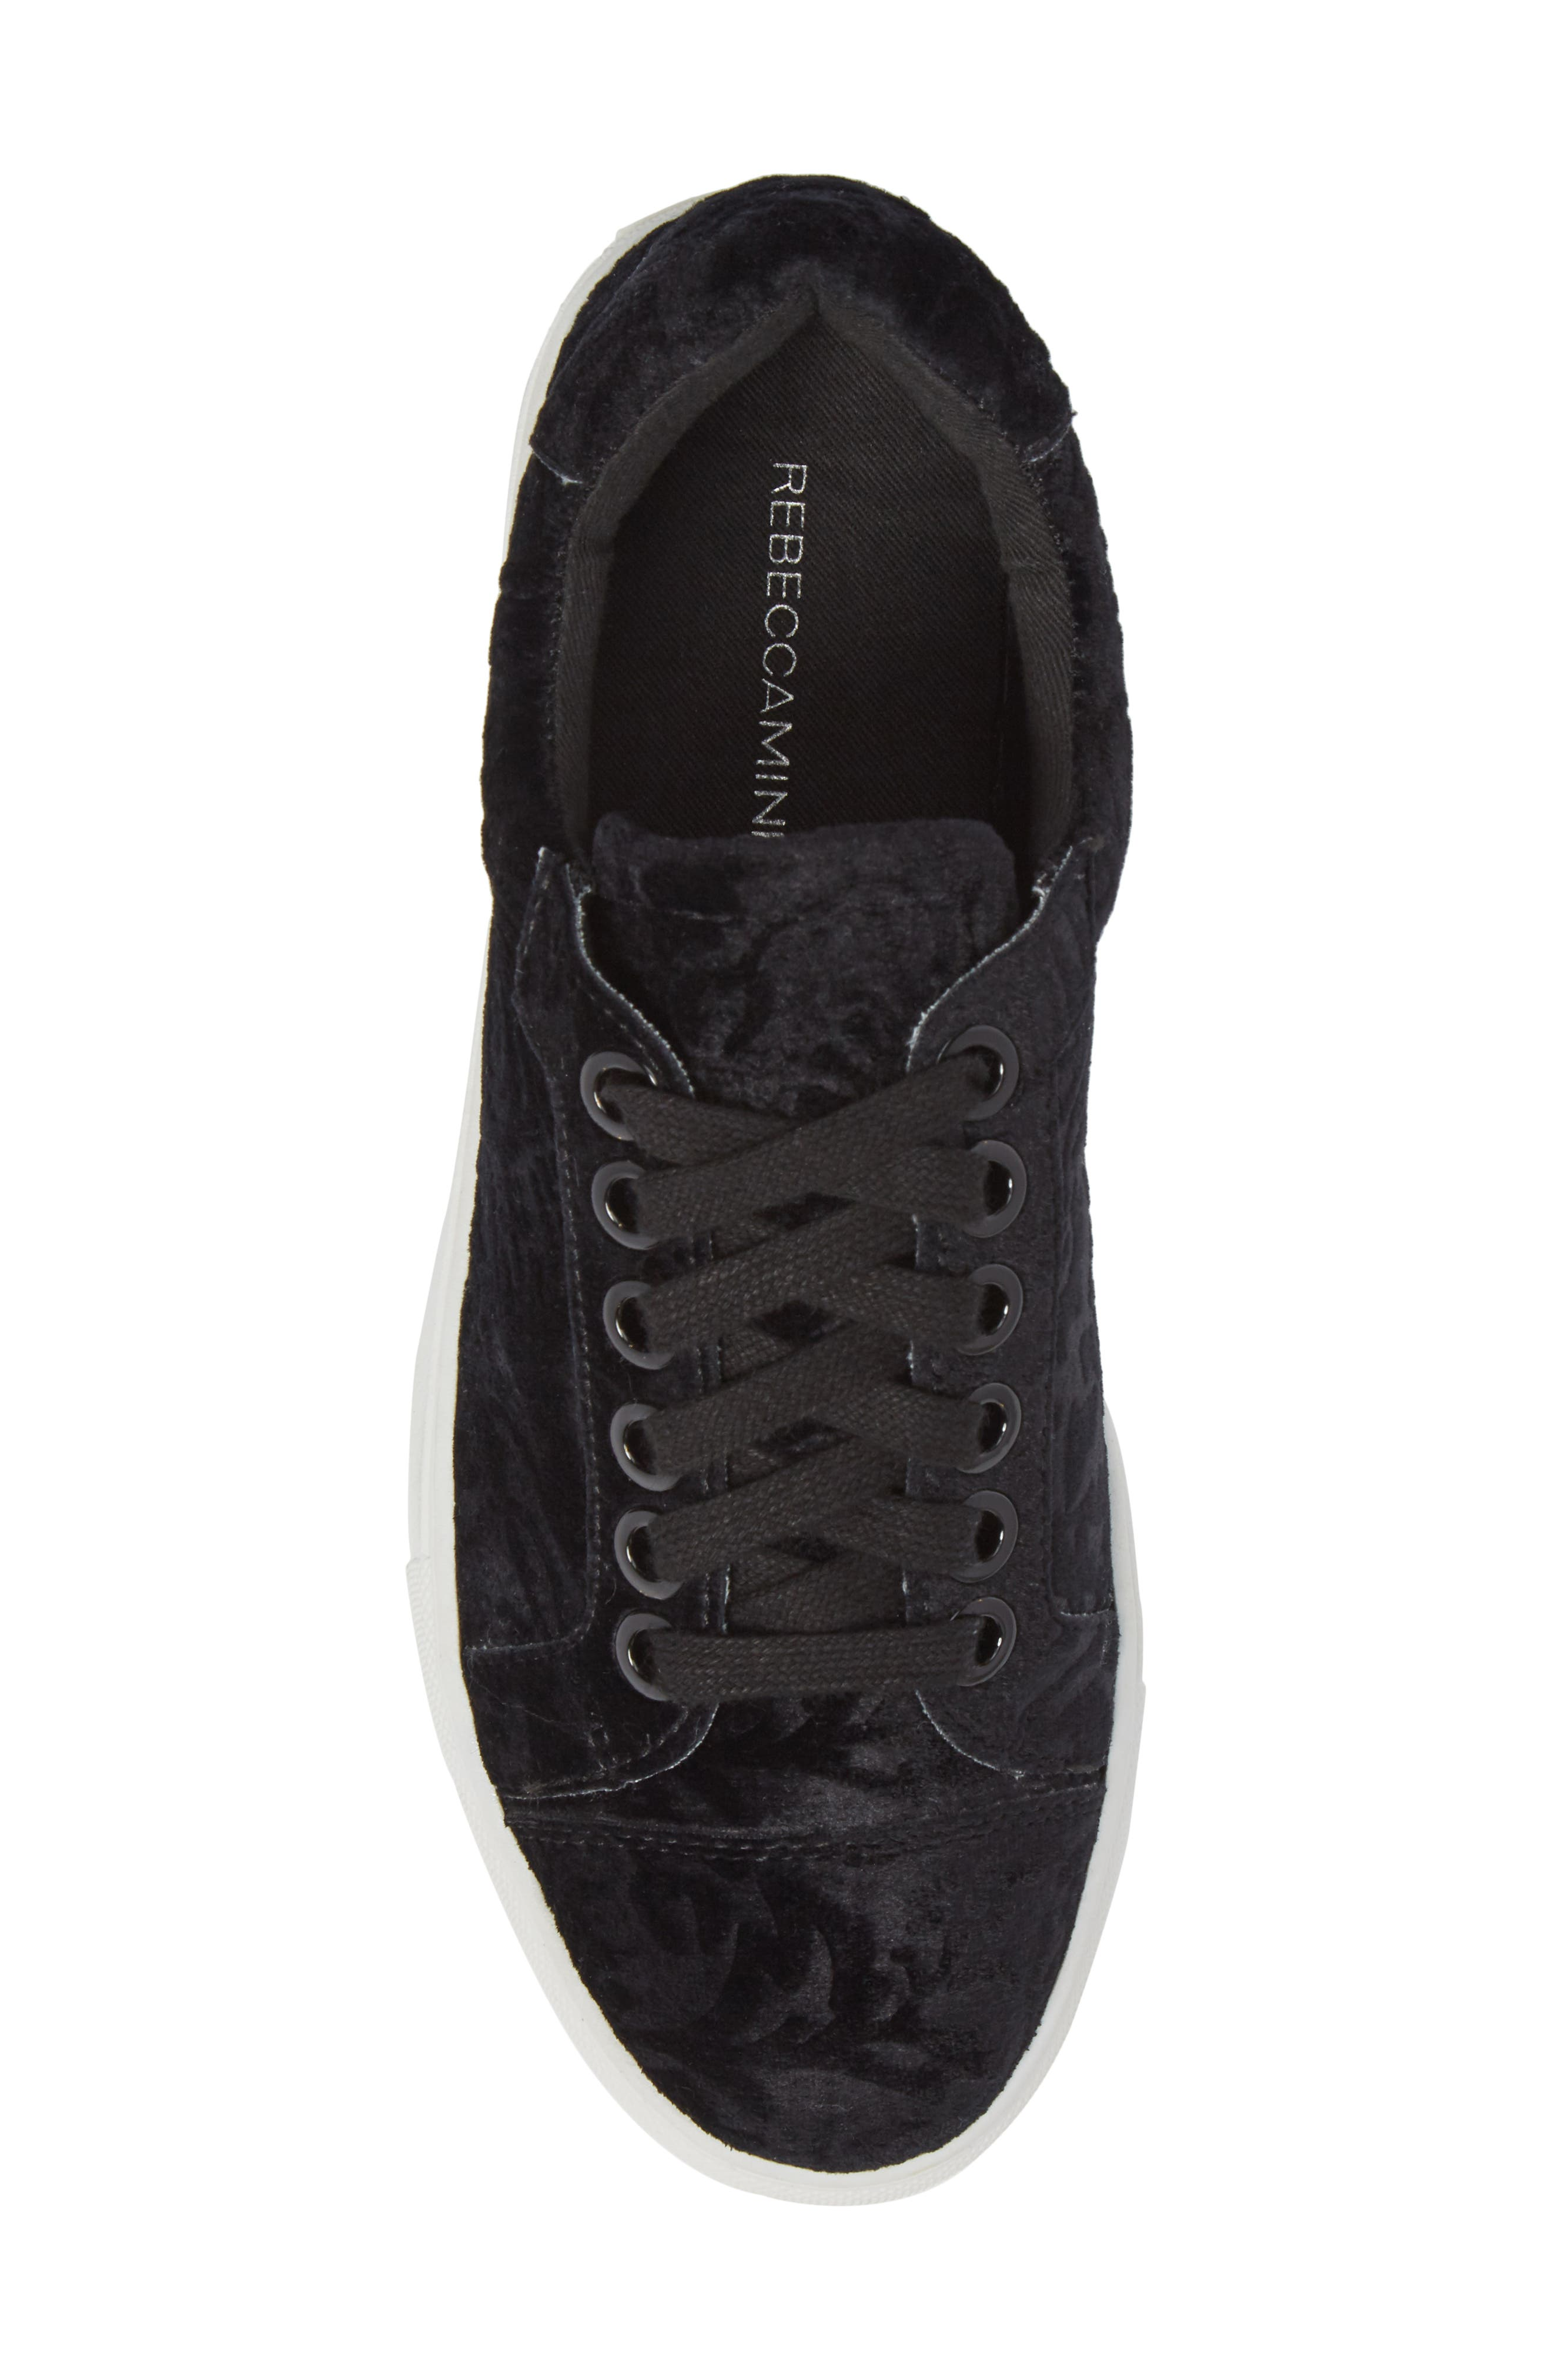 Bleecker Too Sneaker,                             Alternate thumbnail 5, color,                             Black Floral Velvet